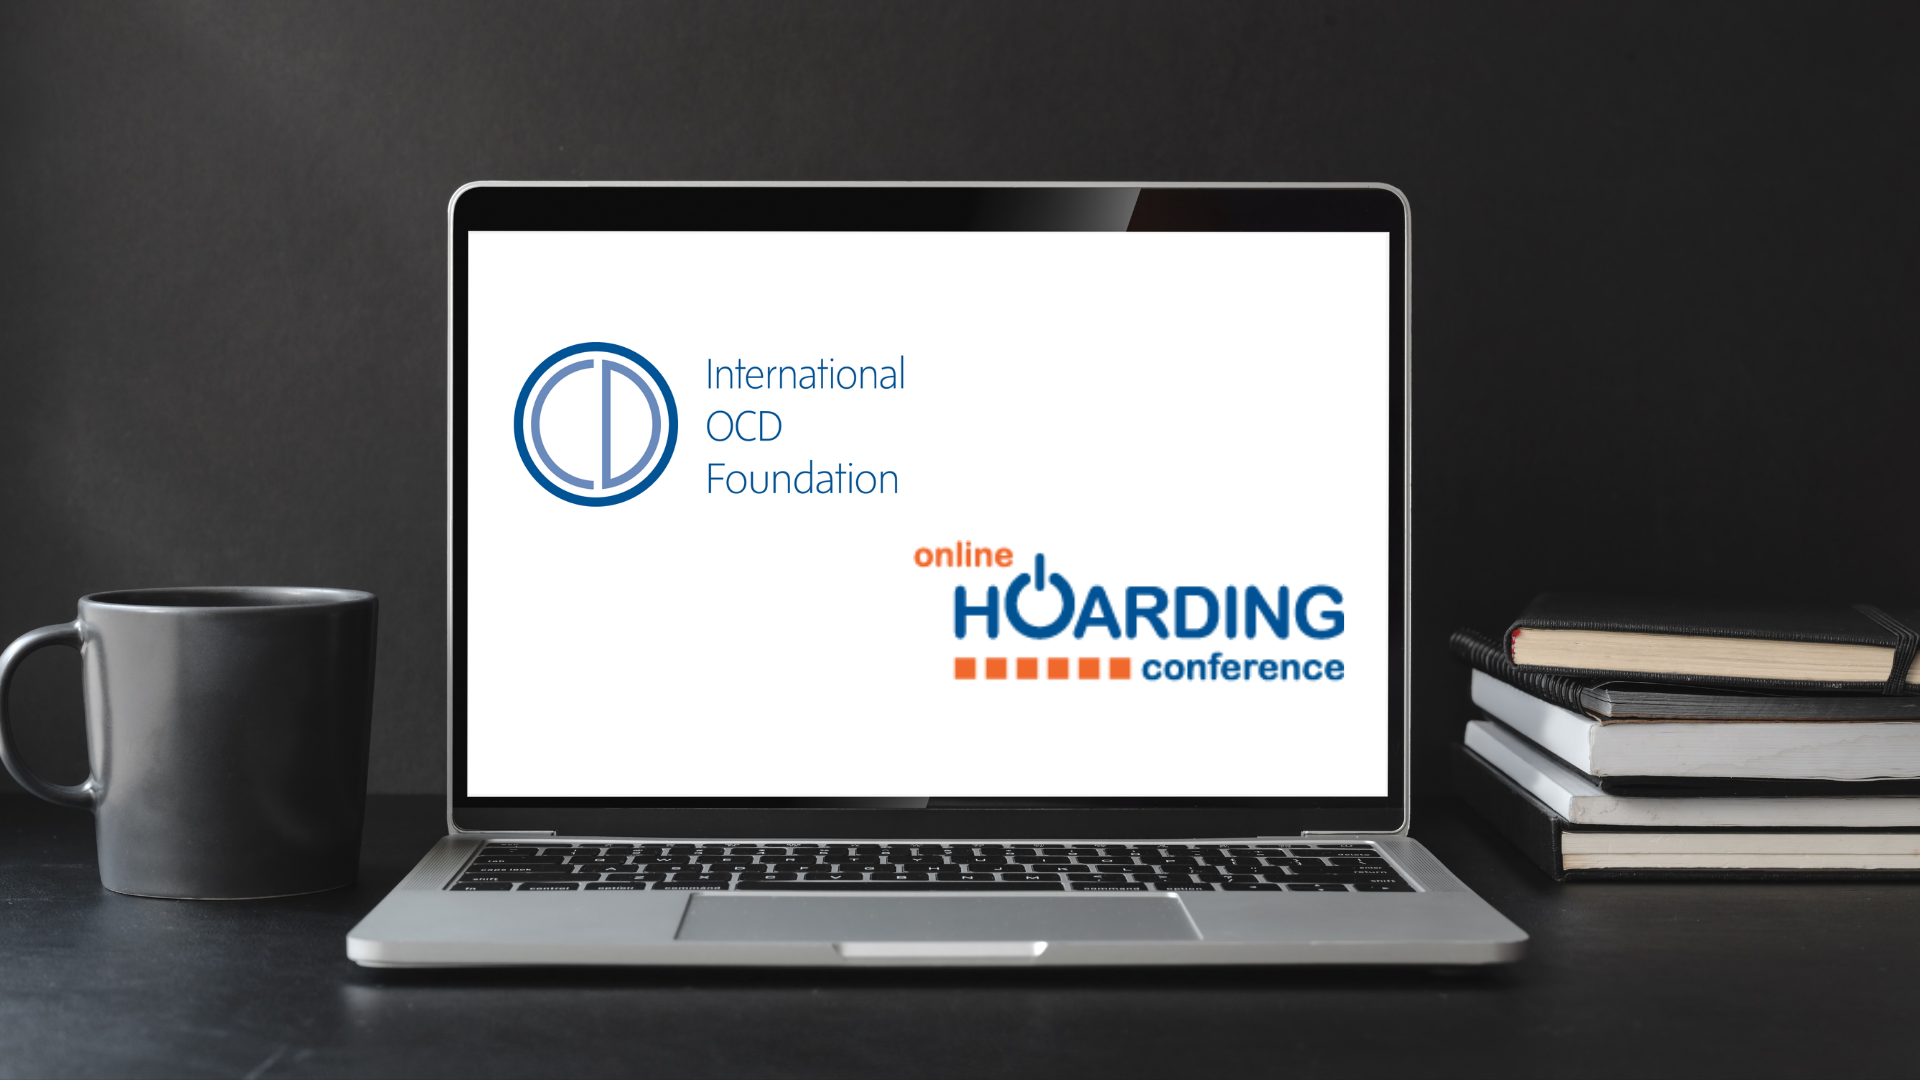 IOCDF_hoarding_conference_2021